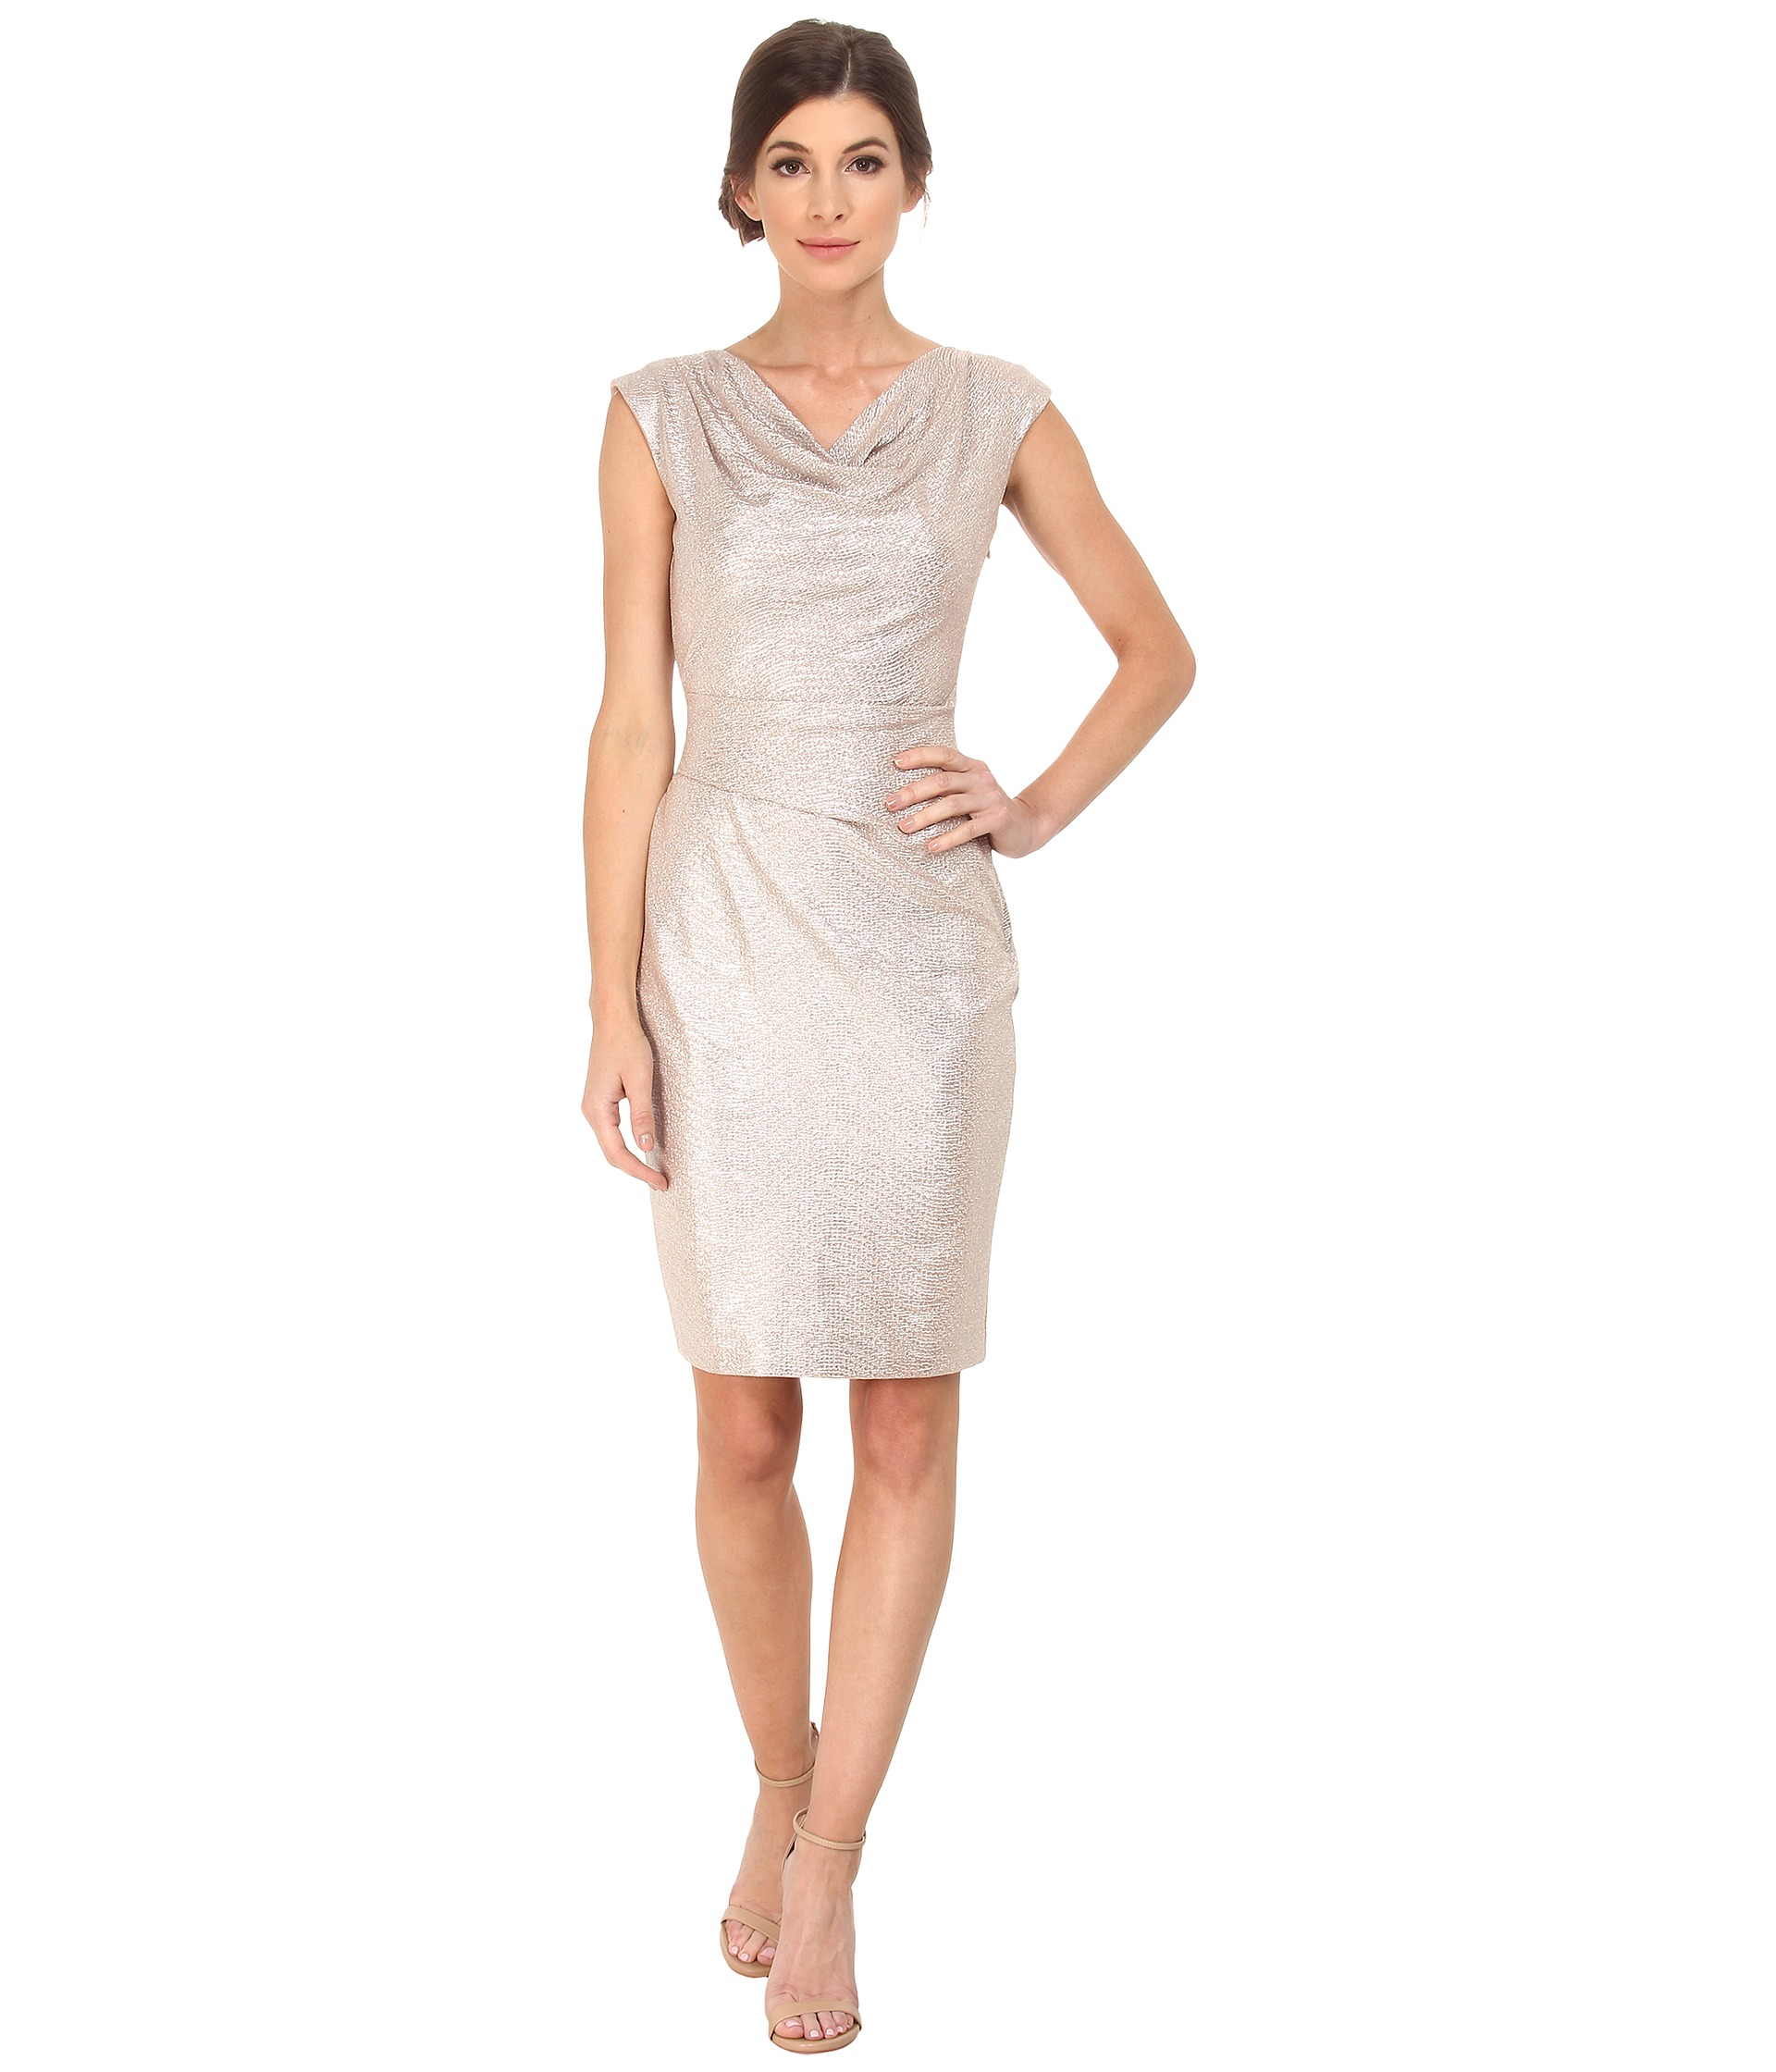 Cowl Dress: Vince Camuto Metallic Cowl Neck Dress In Pink